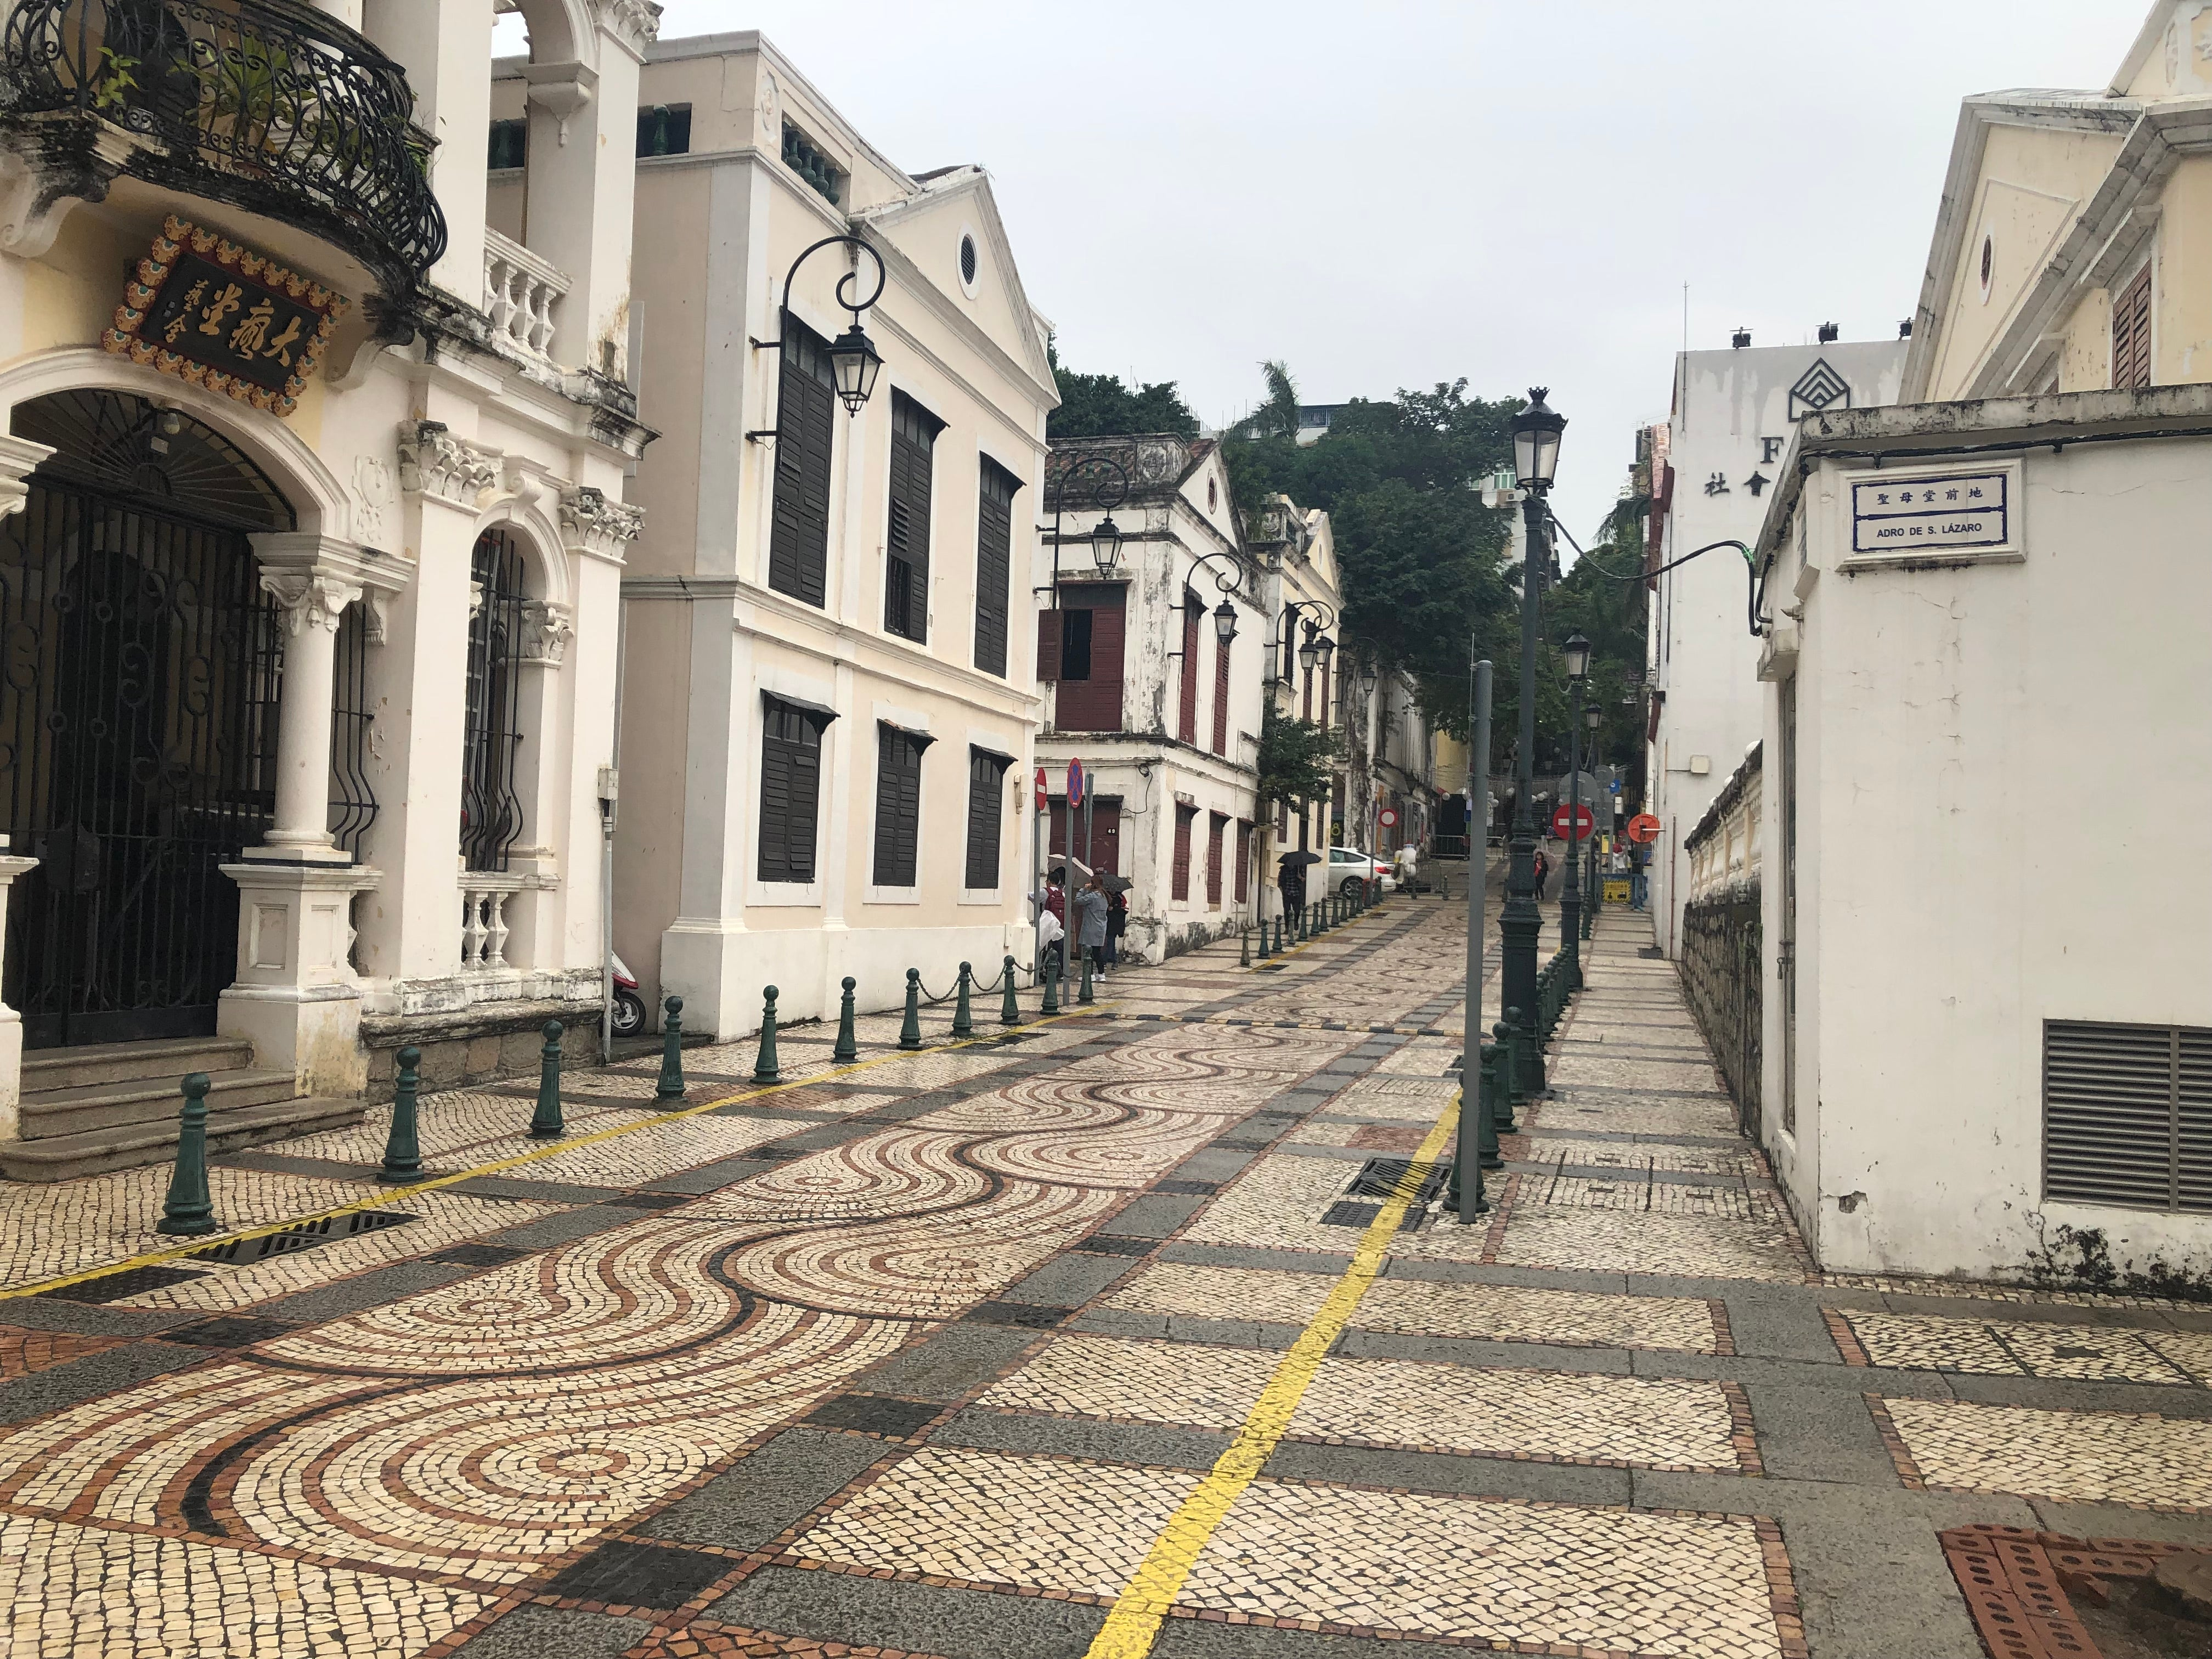 A view of the city of Macao